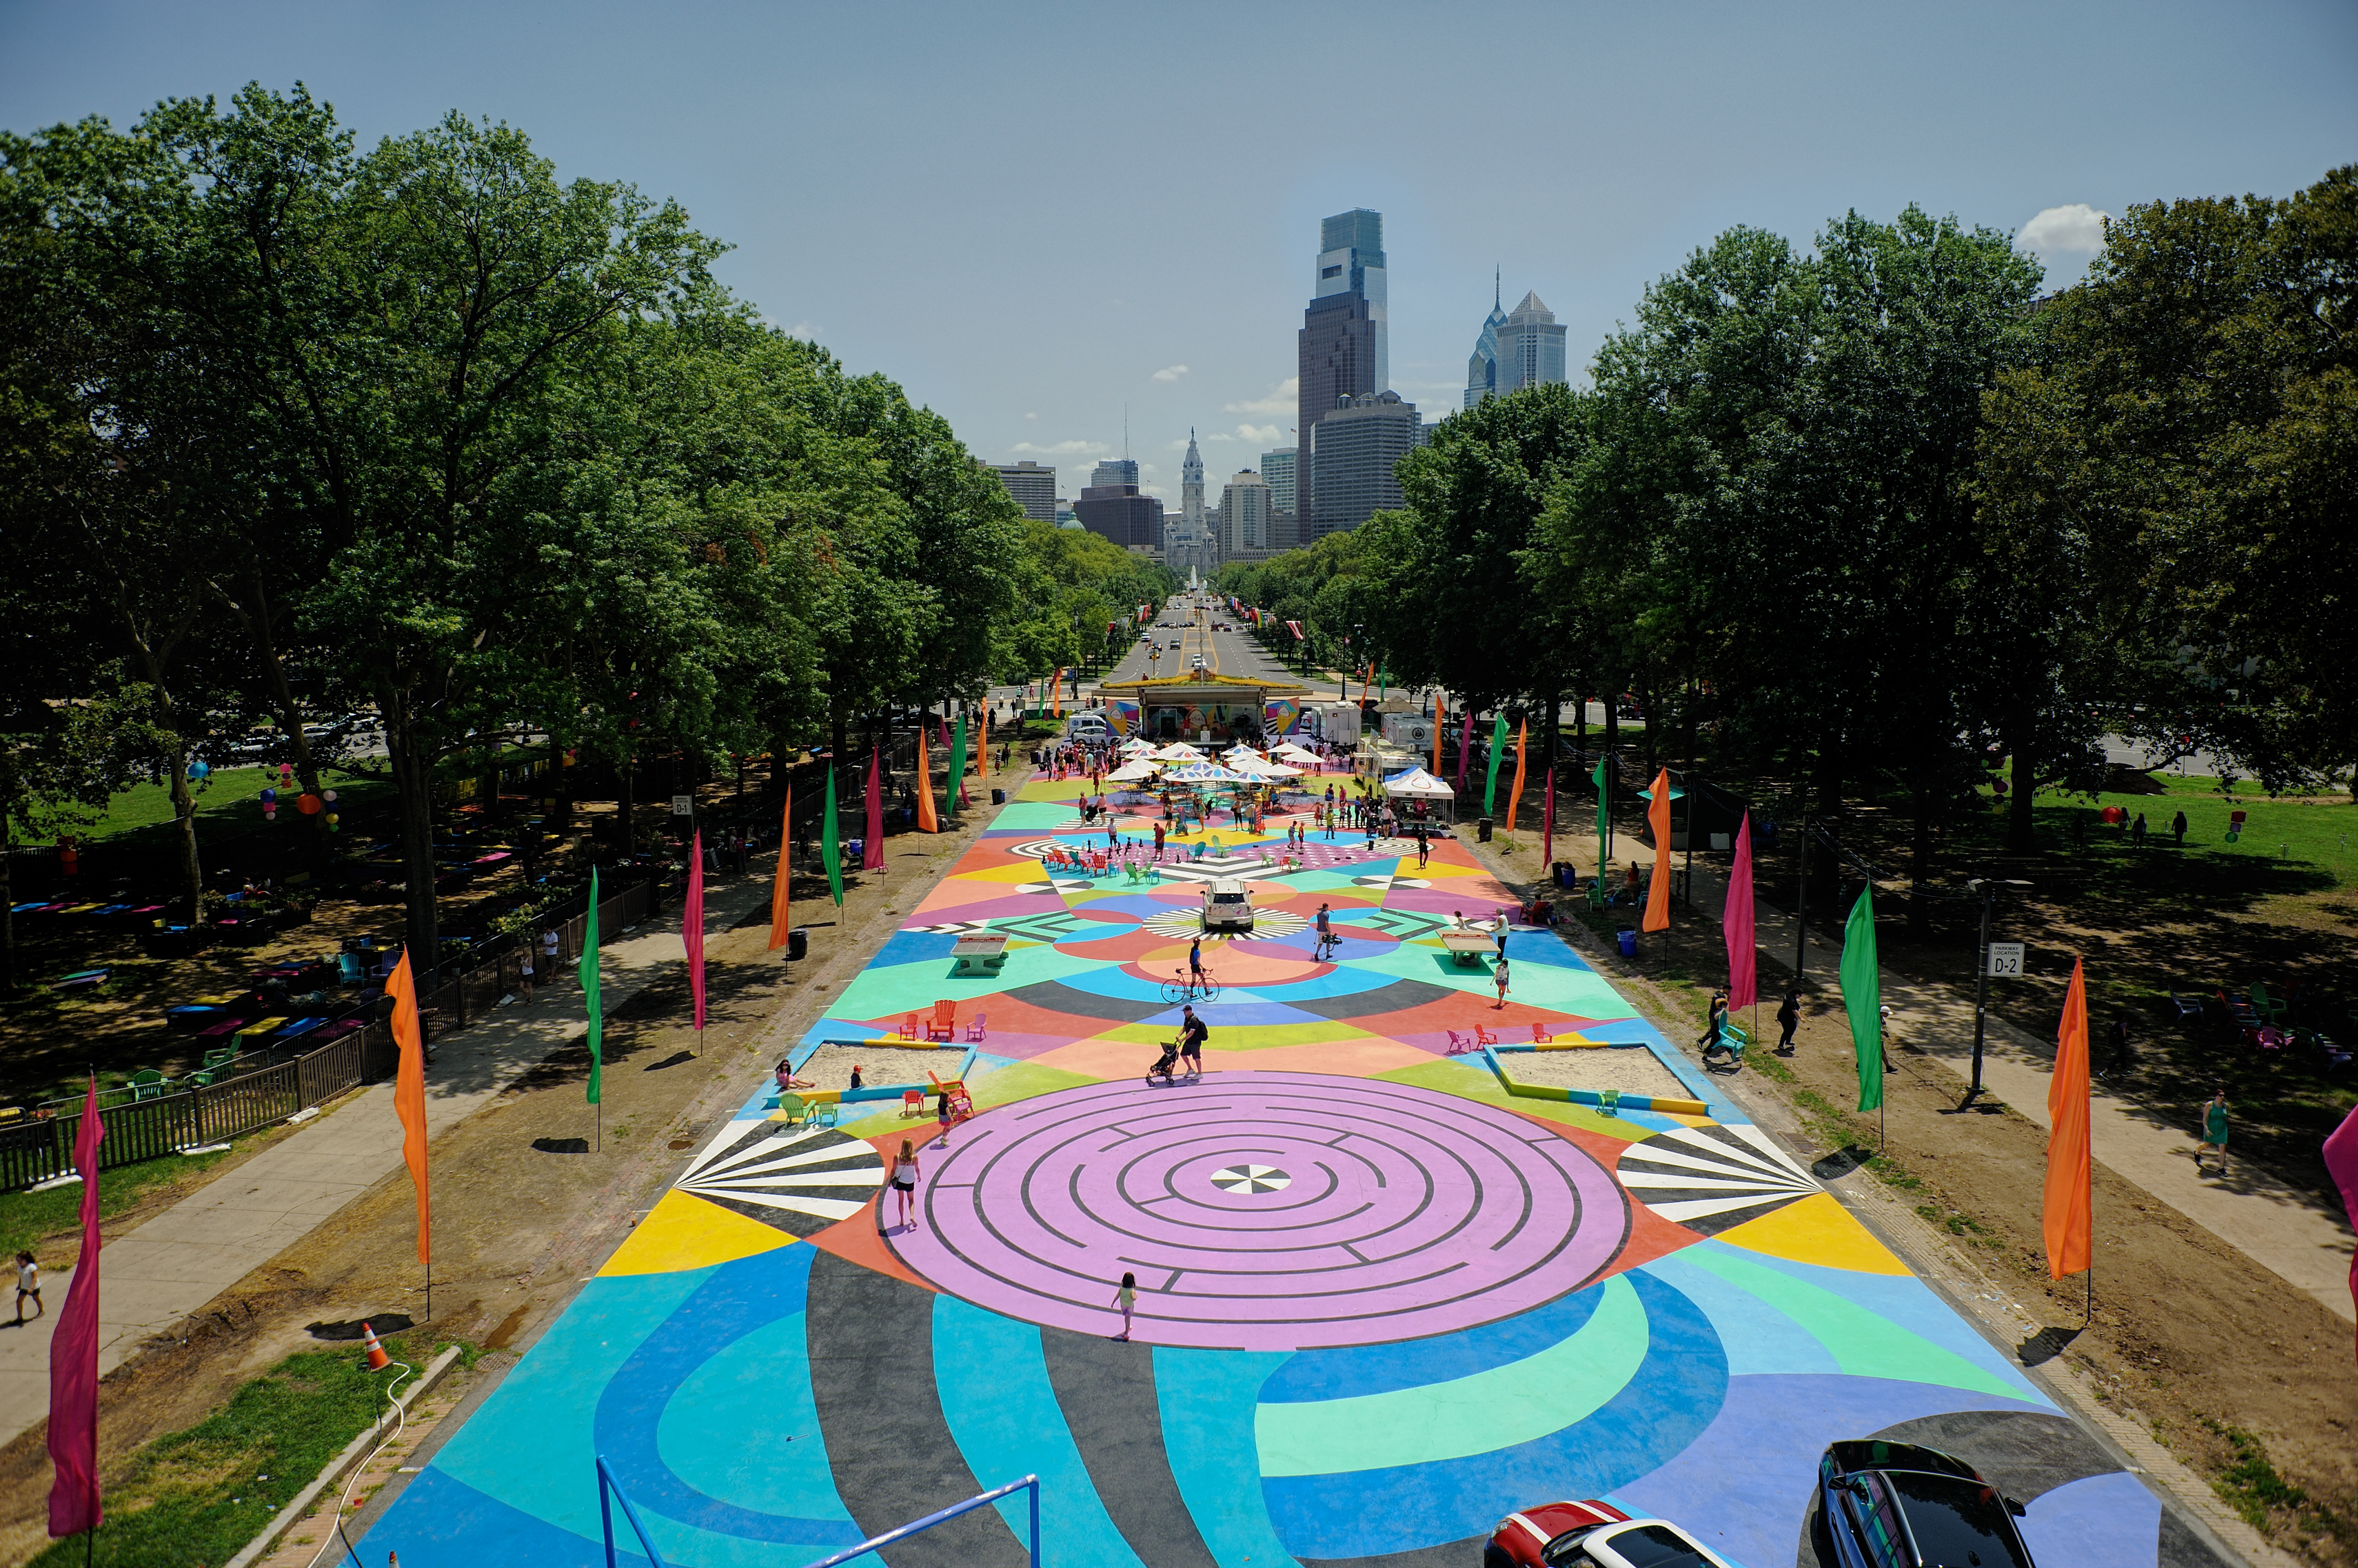 An aerial view of the Oval pop-up park in Philadelphia in 2016.